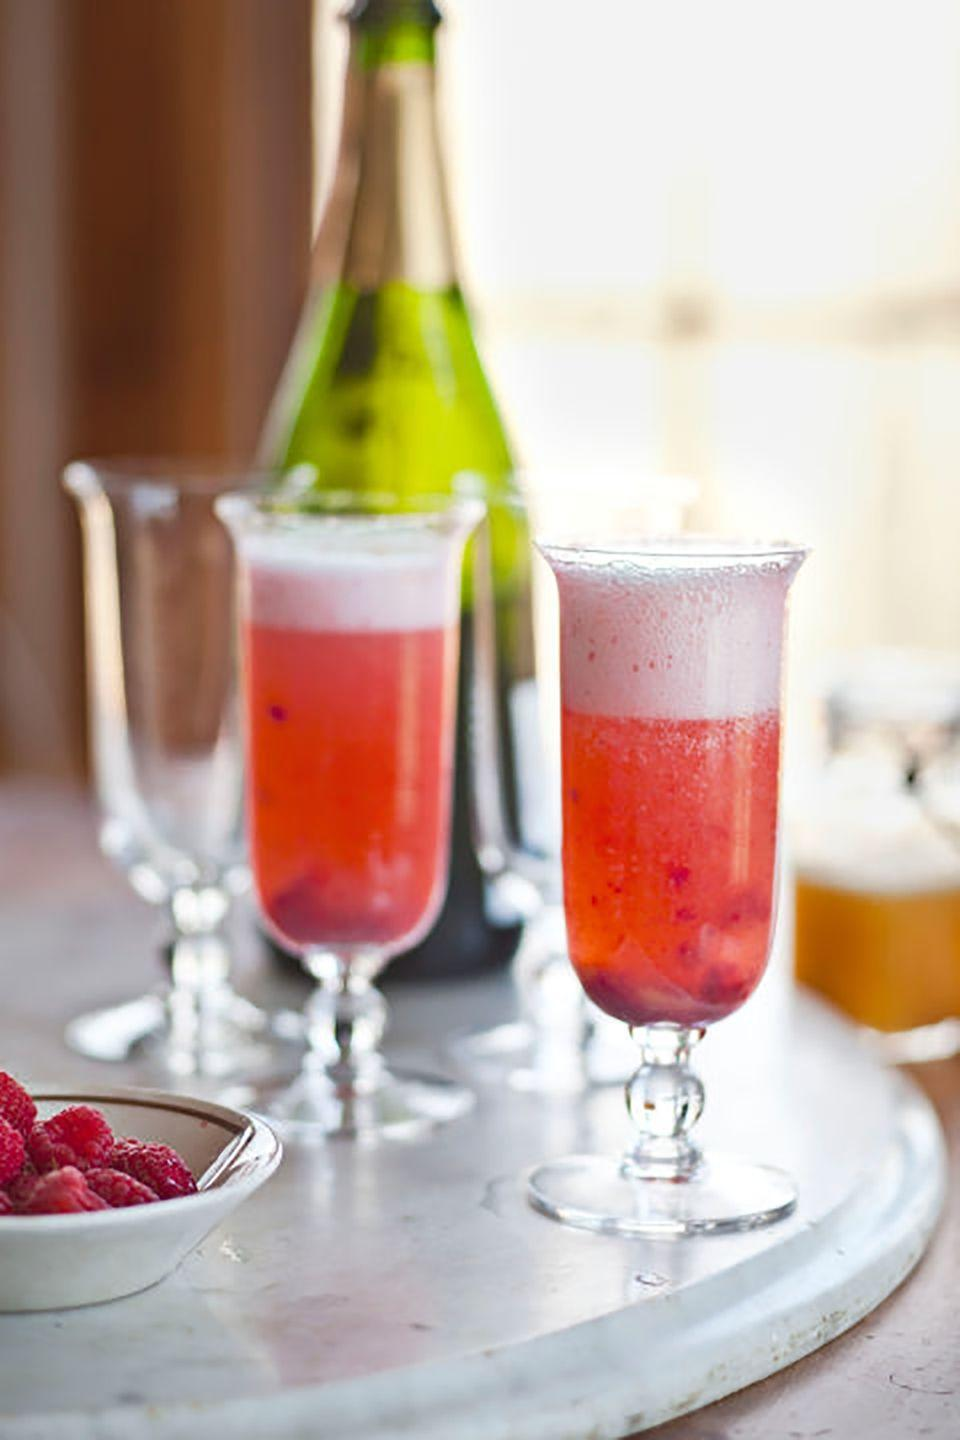 """<p>Sweet berries and peaches add a new twist to the classic mimosa, a perfect treat for celebrating her special day.</p><p><strong><a href=""""https://www.countryliving.com/food-drinks/recipes/a4118/peach-melba-mimosas-recipe-clv0212/"""" rel=""""nofollow noopener"""" target=""""_blank"""" data-ylk=""""slk:Get the recipe"""" class=""""link rapid-noclick-resp"""">Get the recipe</a>.</strong></p>"""